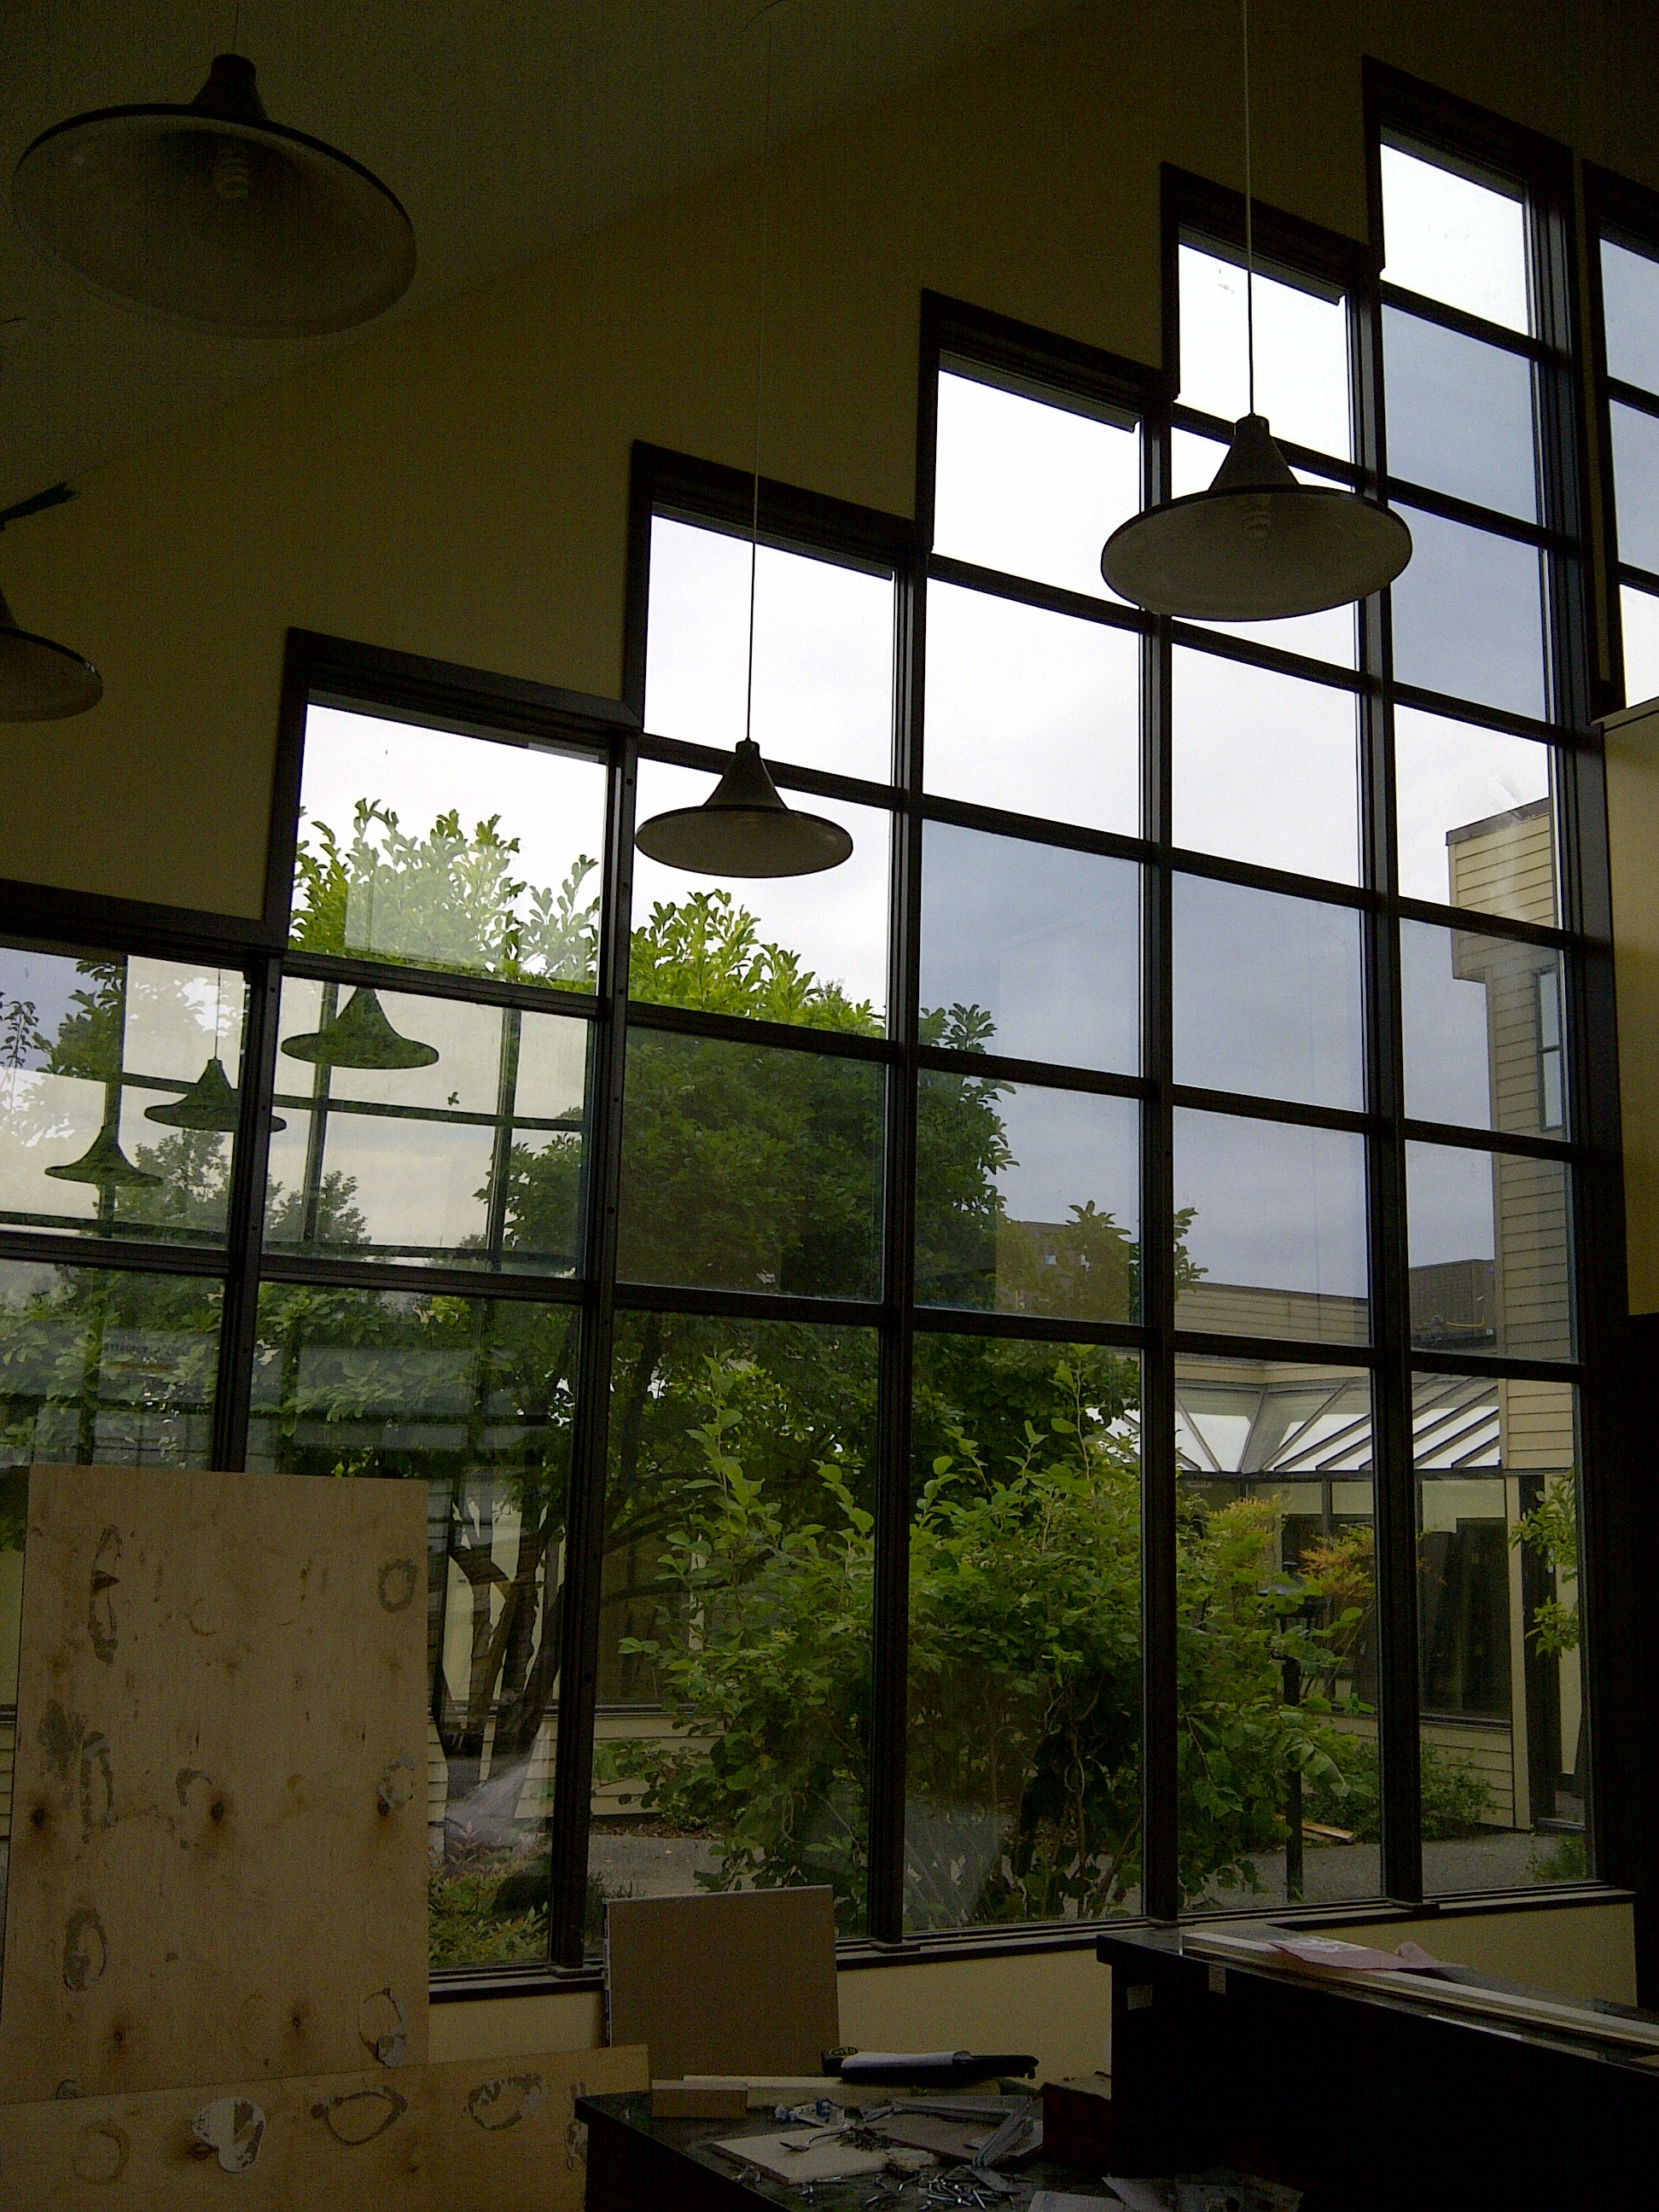 replaced commercial building foggy glass windows with brand new double paned glass windows